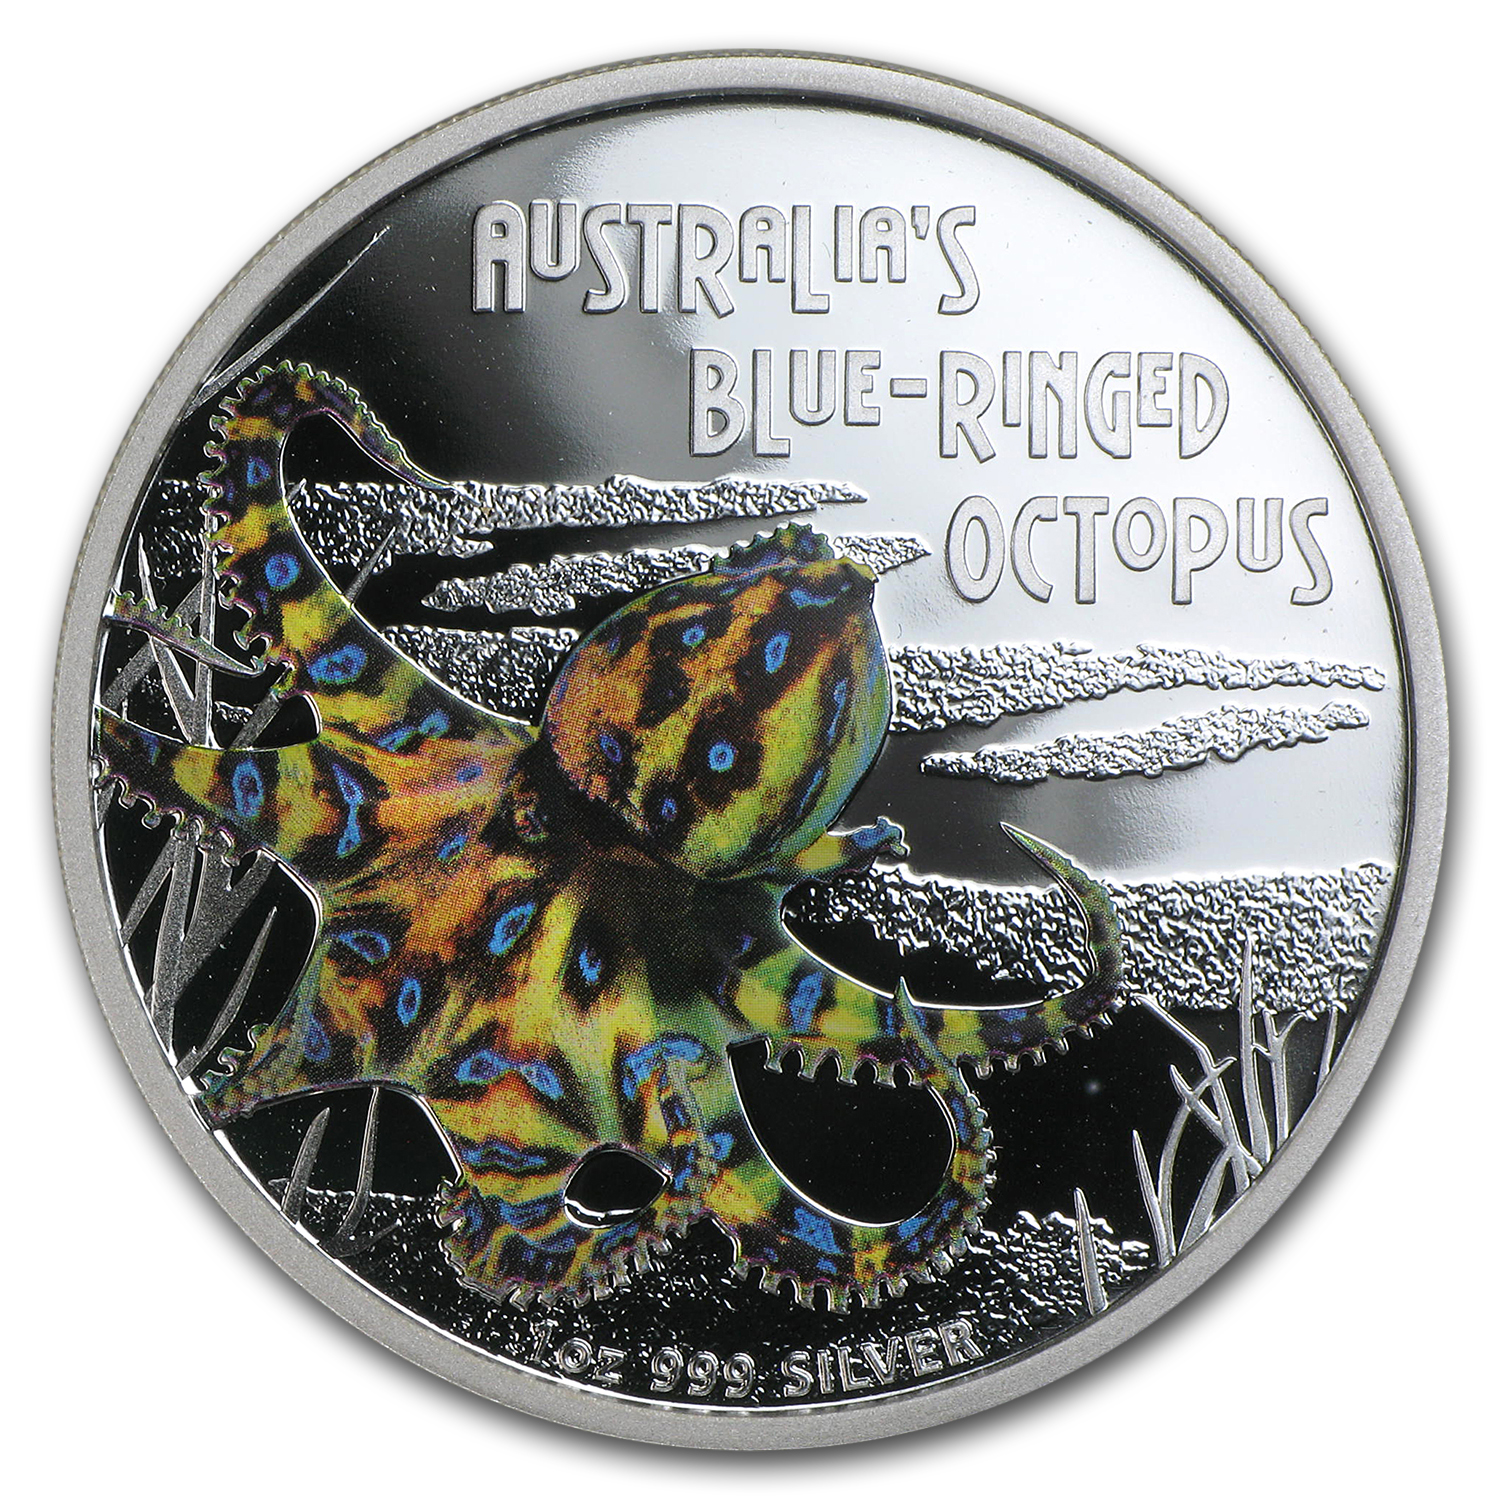 2008 Australia 1 oz Silver Blue Ringed Octopus Proof